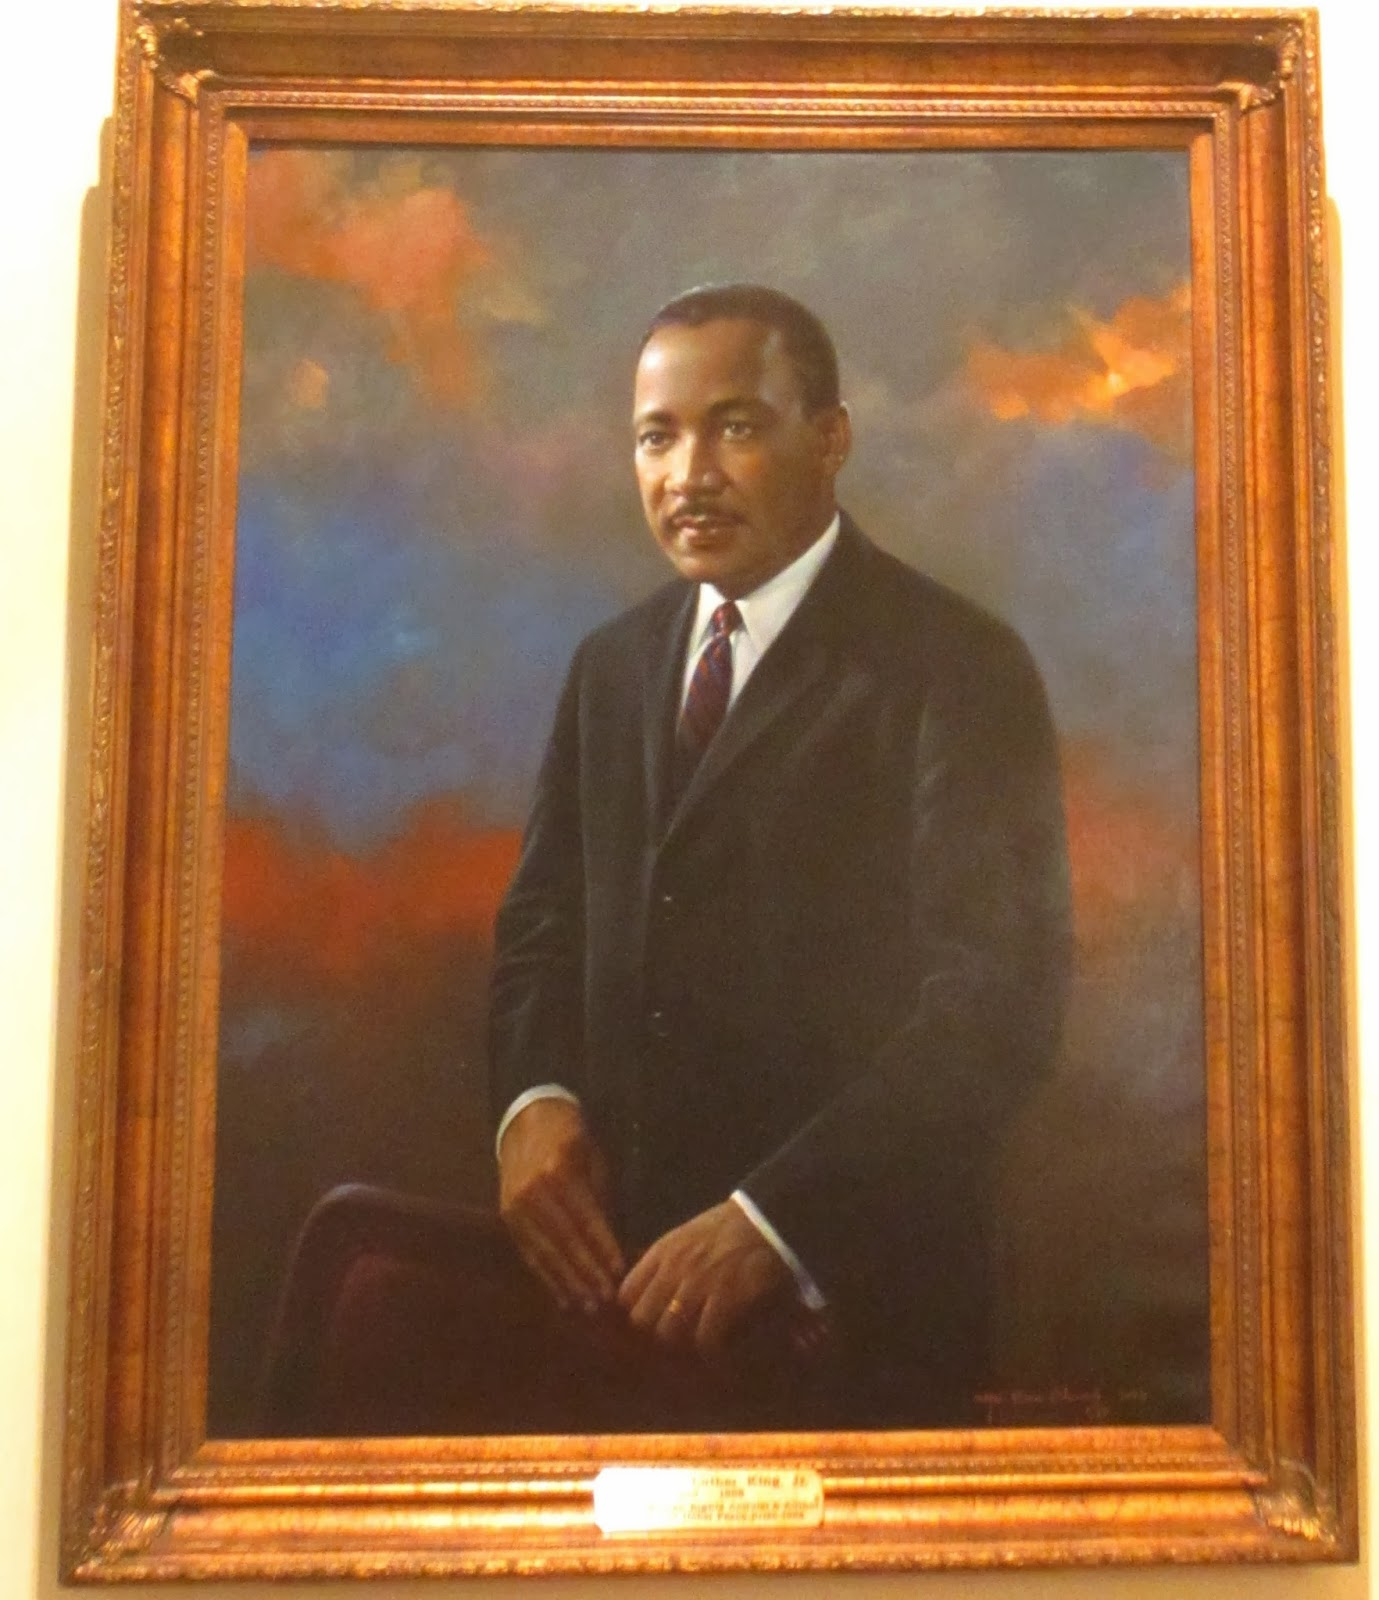 8 Images of Dr. Martin Luther King, Jr. that you should see today - Sugarcane Magazine ™| Black ...